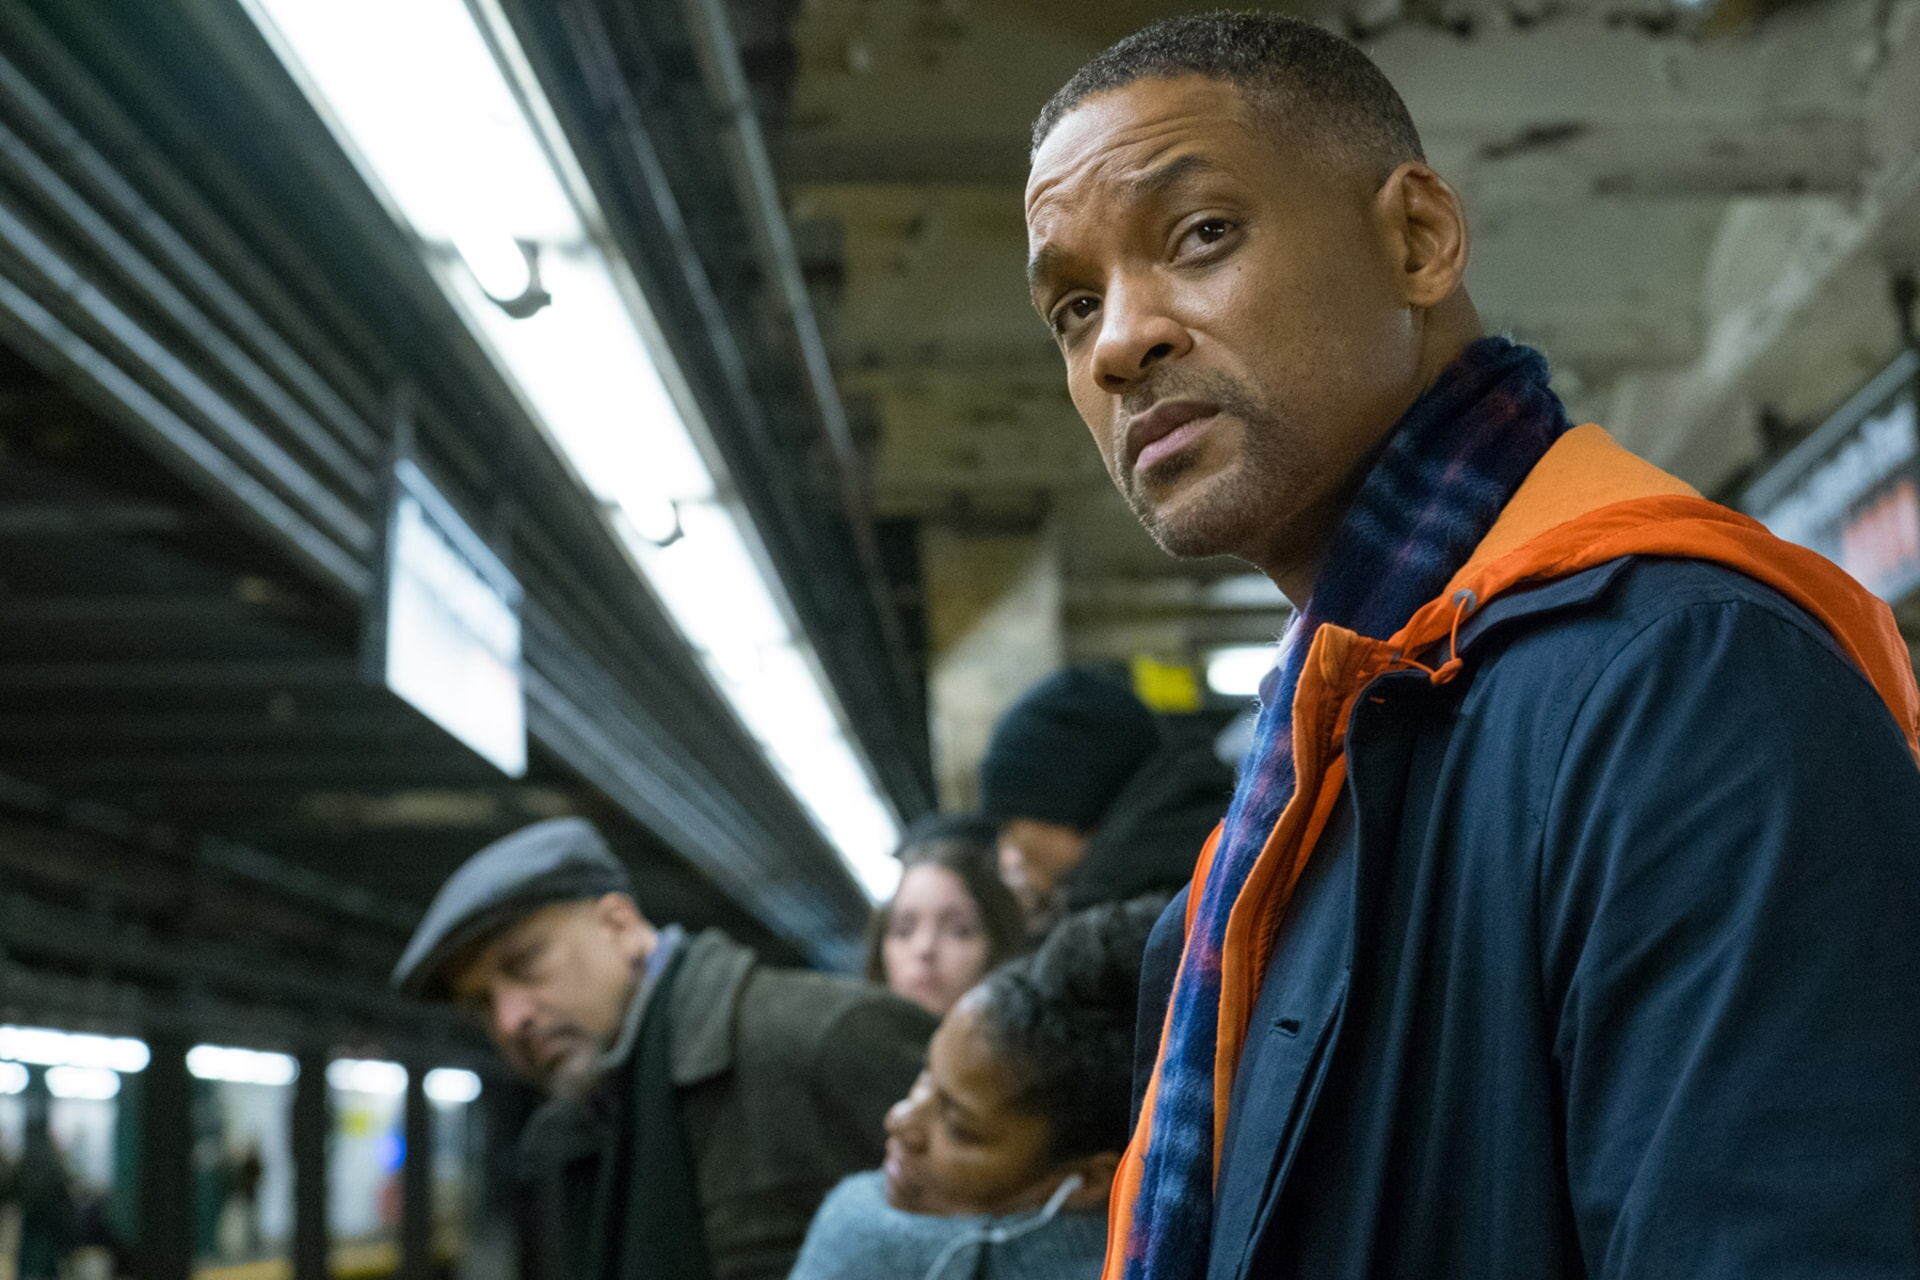 Collateral Beauty - Image 15